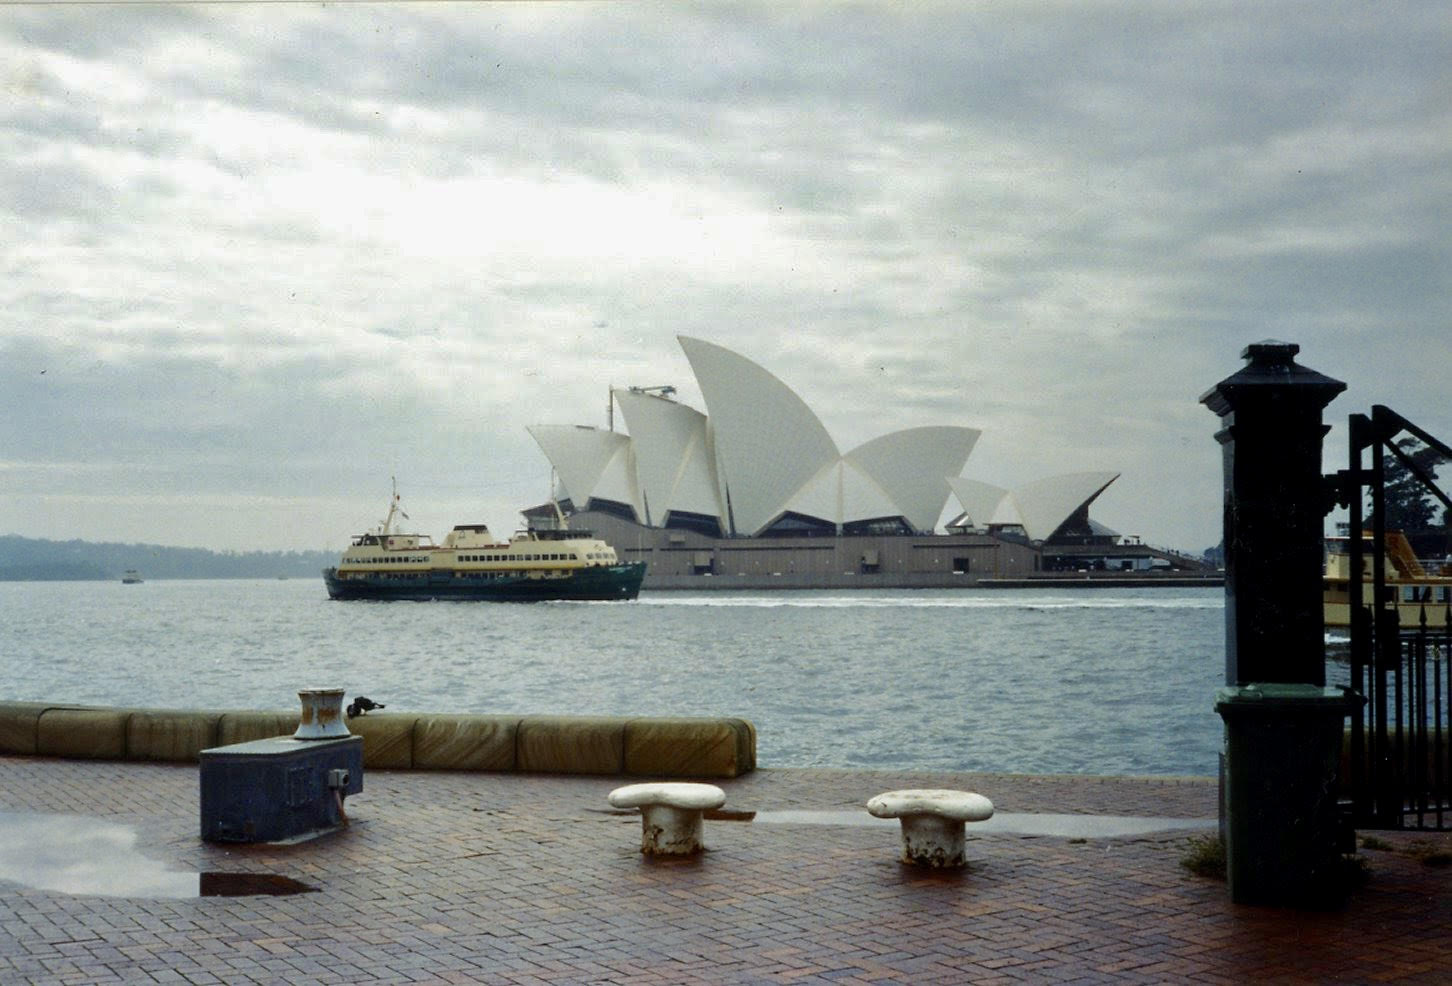 Sitting at Sydney harbor, looking at the Opera